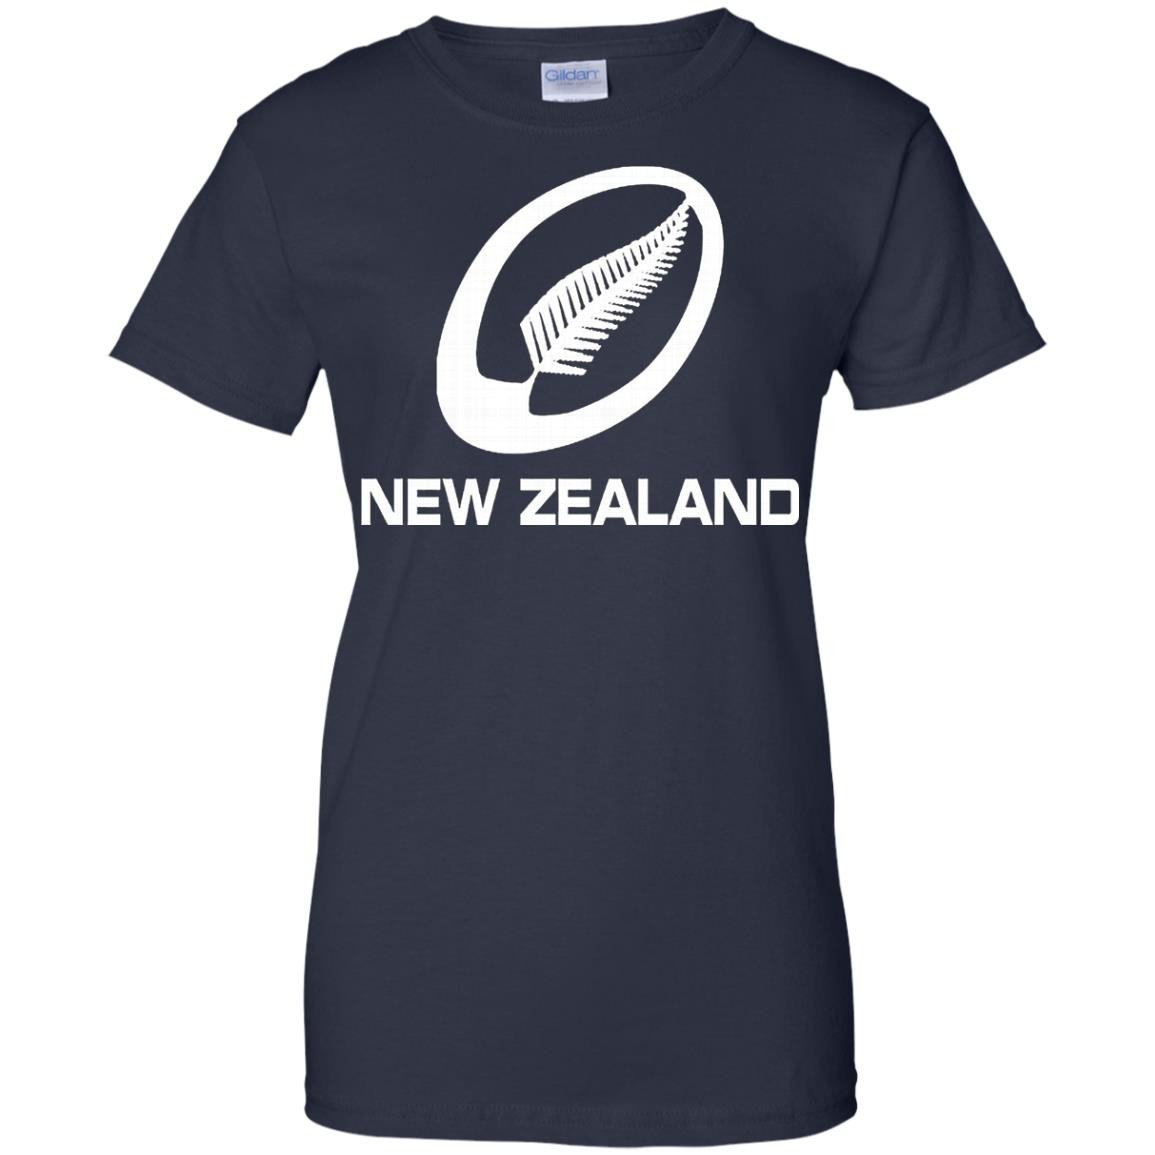 NEW ZEA-LAND RUG-BY ALL BLACKS Shirt Rugby Union T Shirt